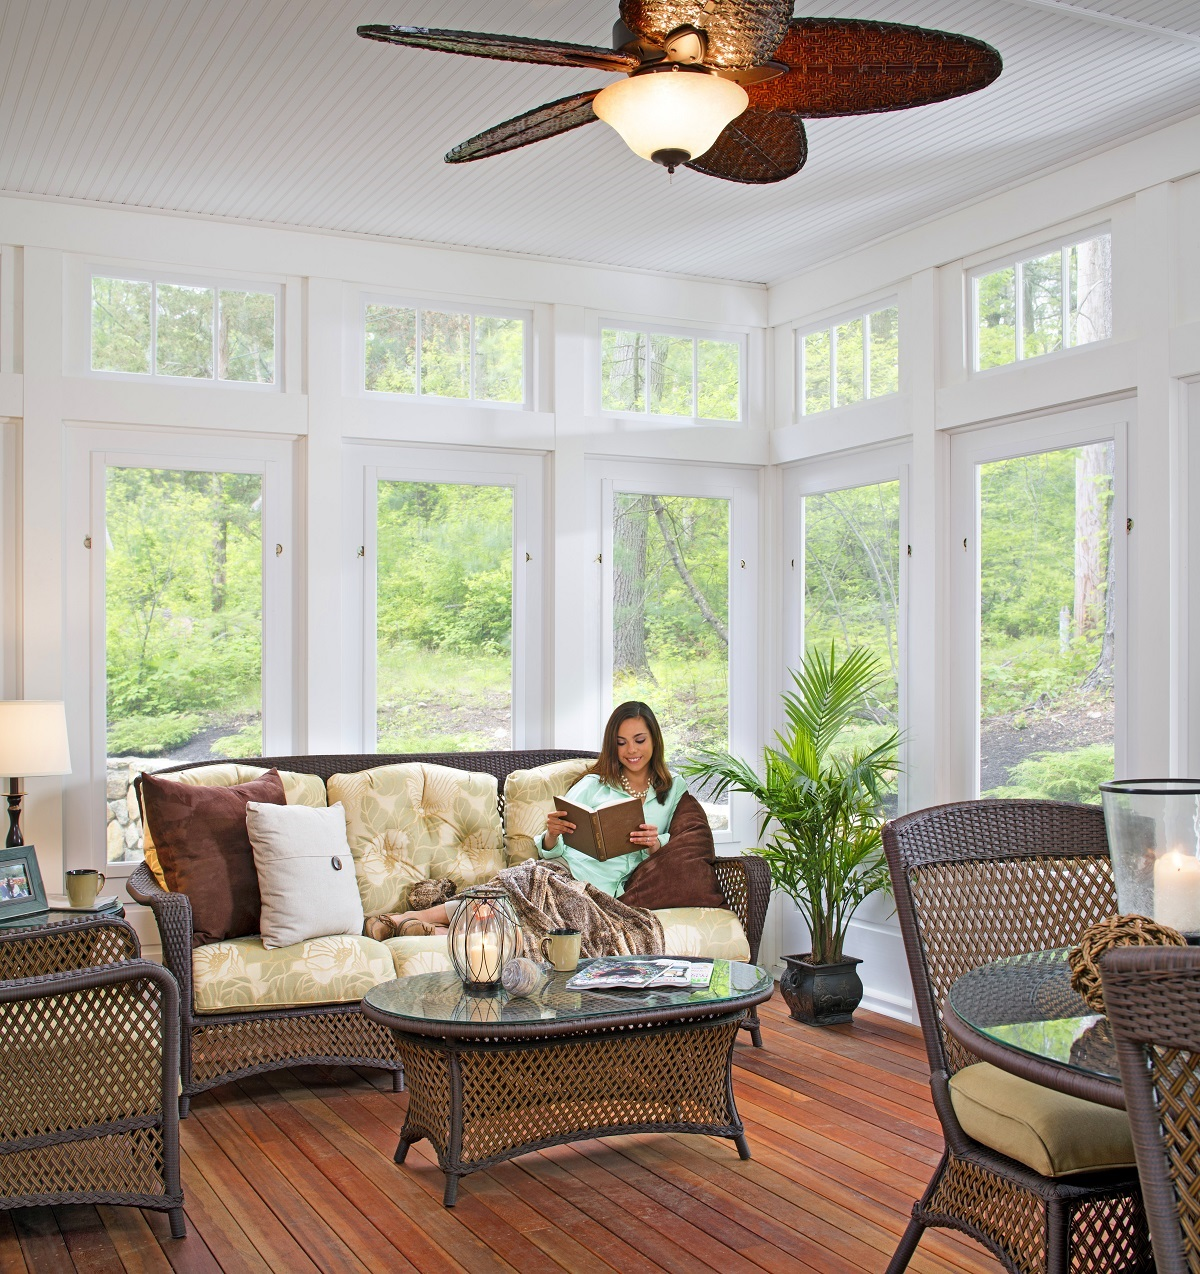 A-custom-sunroom-can-serve-as-an-oasis-within-the-home